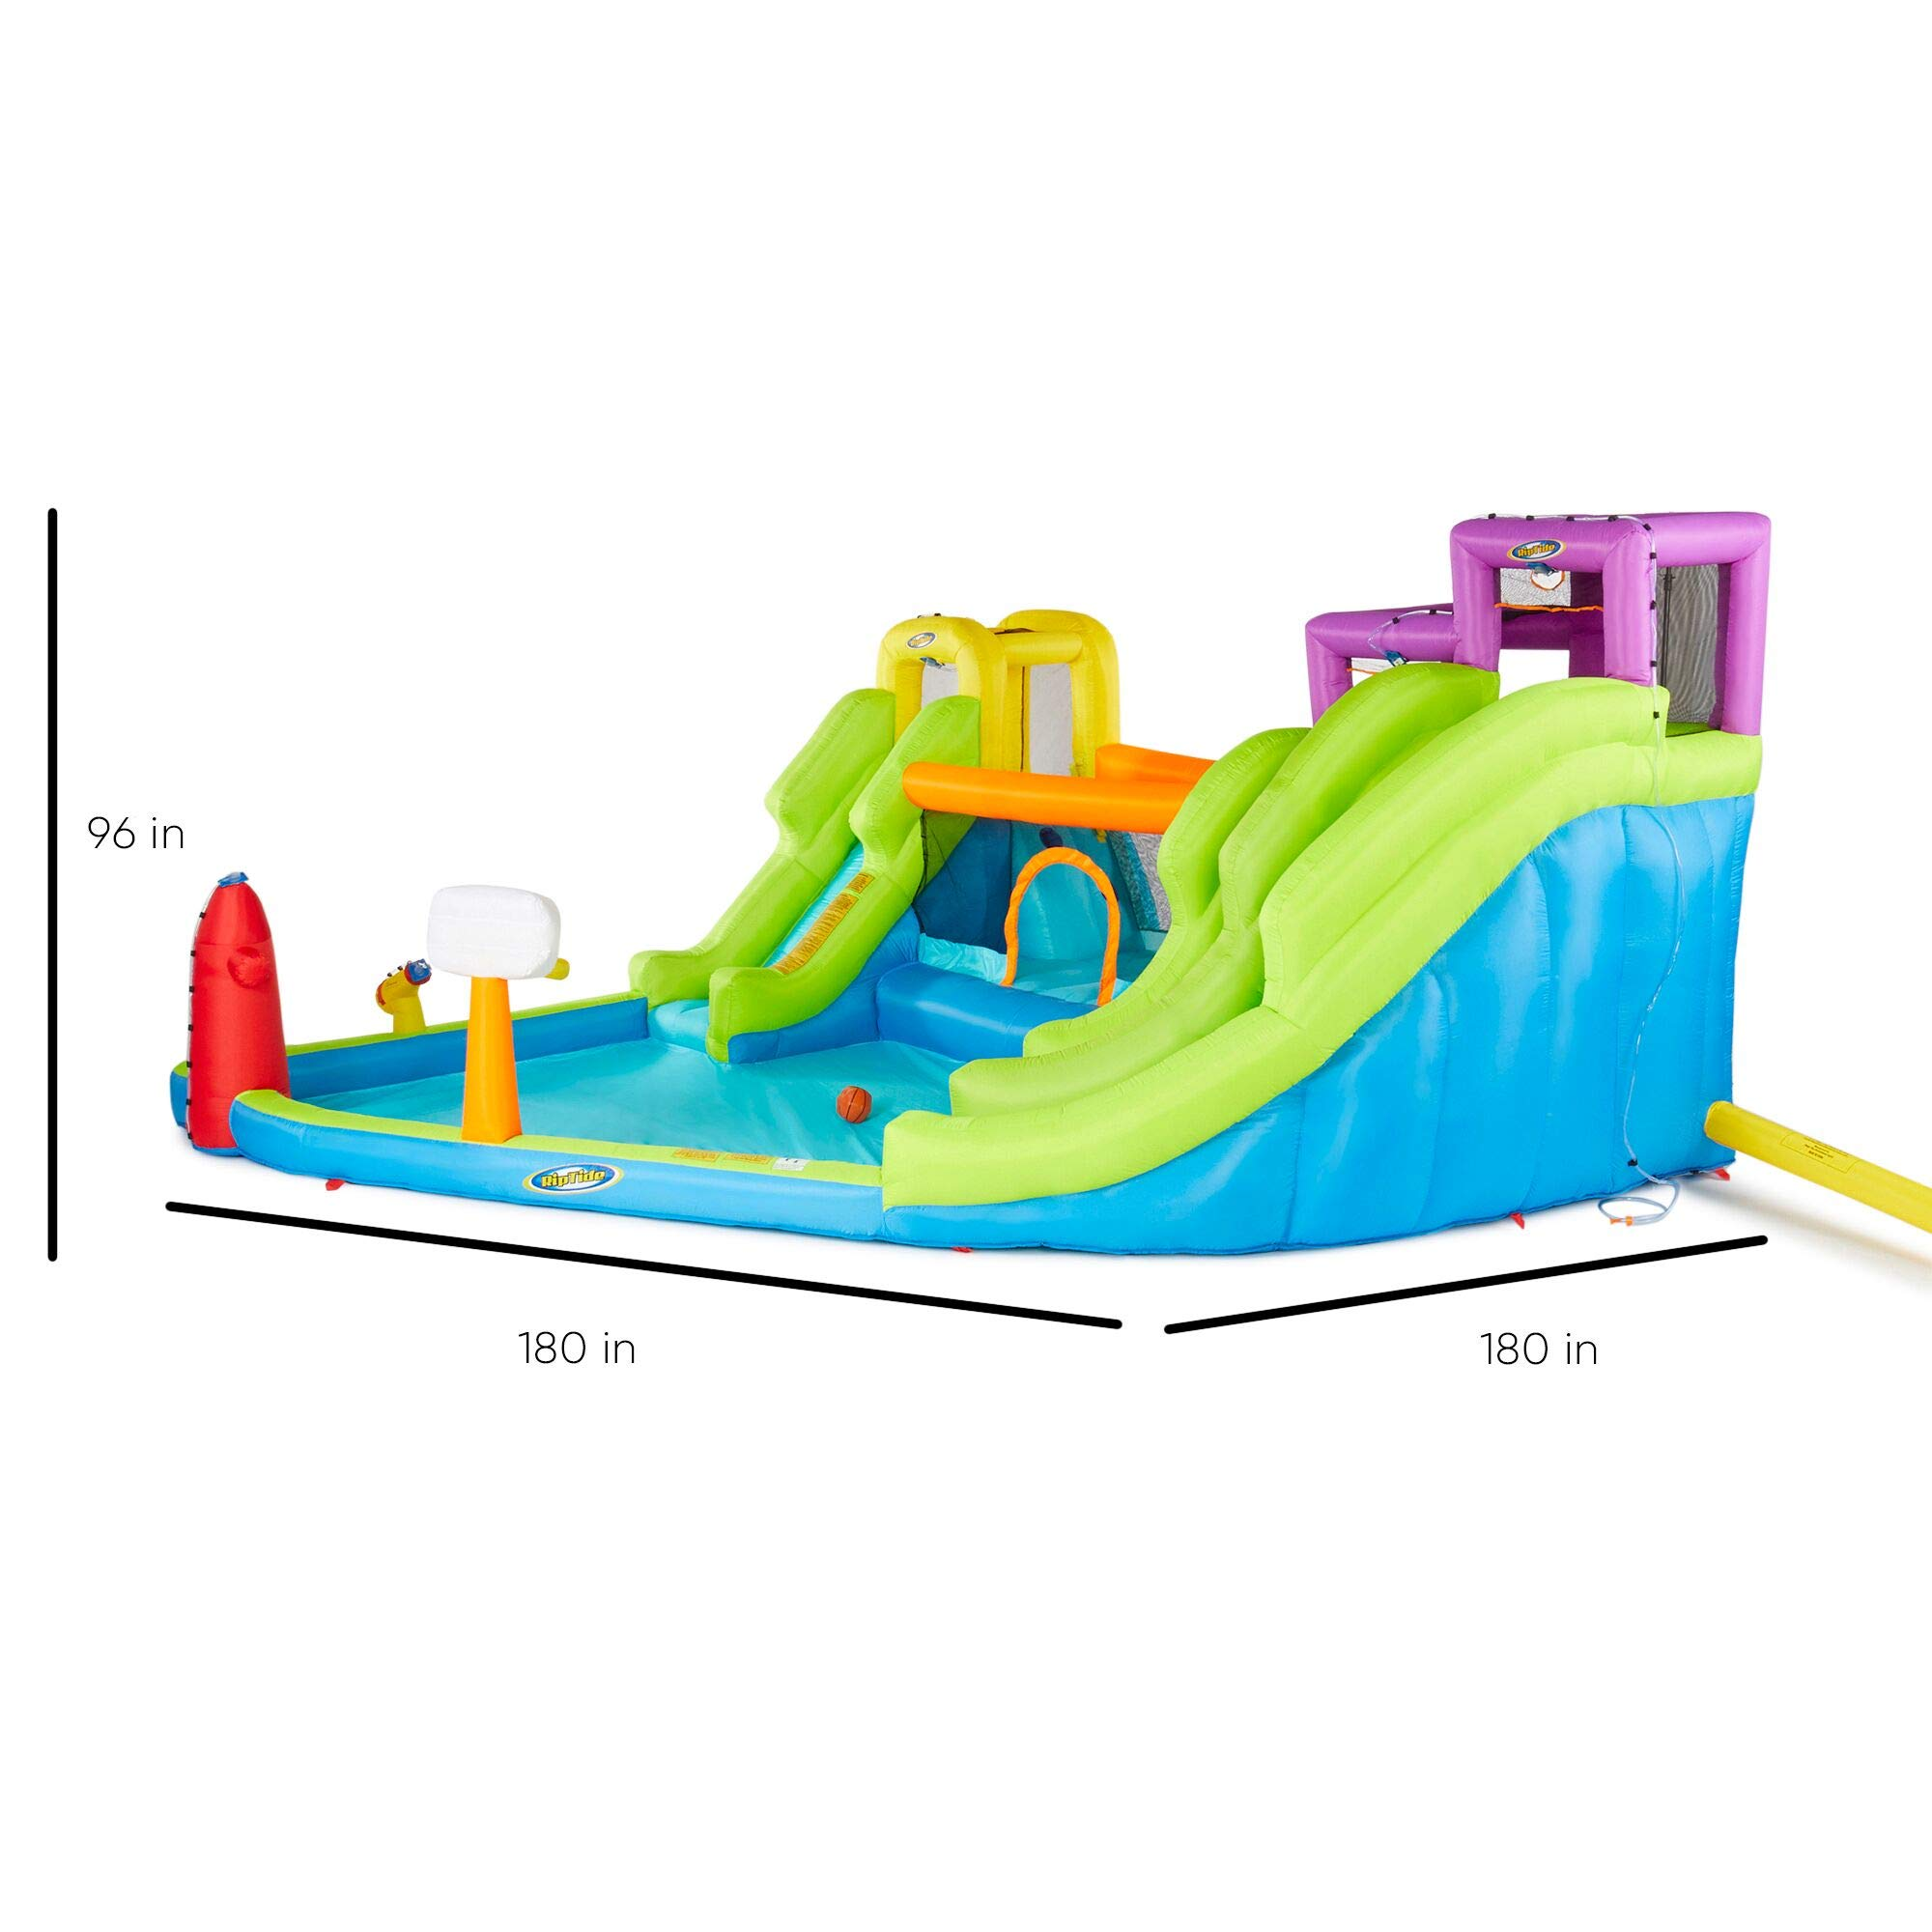 Riptide Triple Fun Inflatable PVC Water Park with 3 Slides & Obstacle Course by Riptide (Image #3)